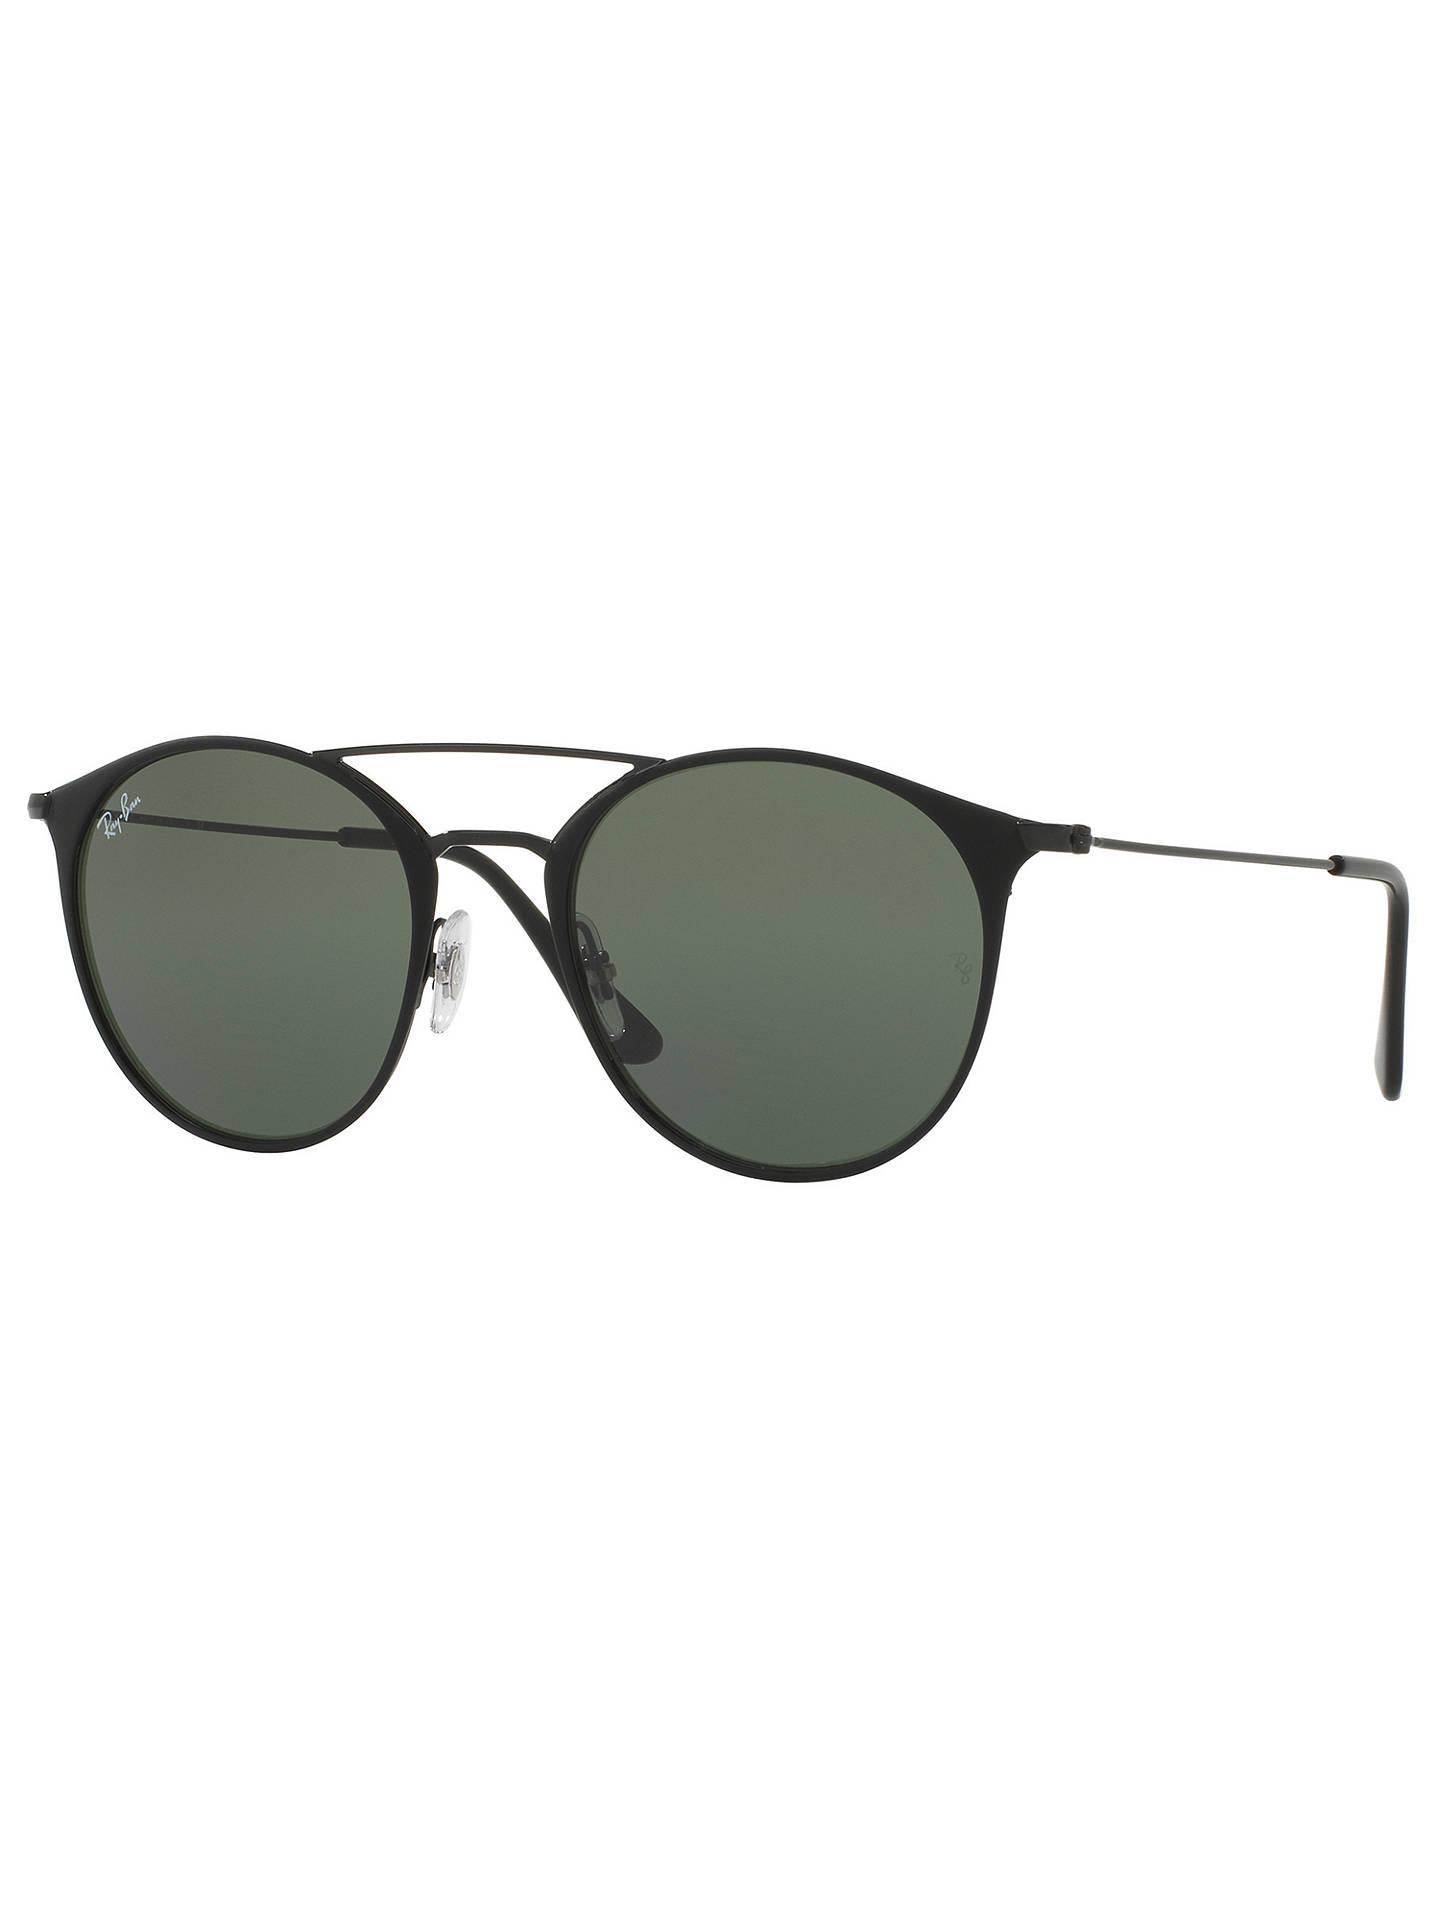 BuyRay-Ban RB3546 Oval Sunglasses, Black/Dark Green Online at johnlewis.com